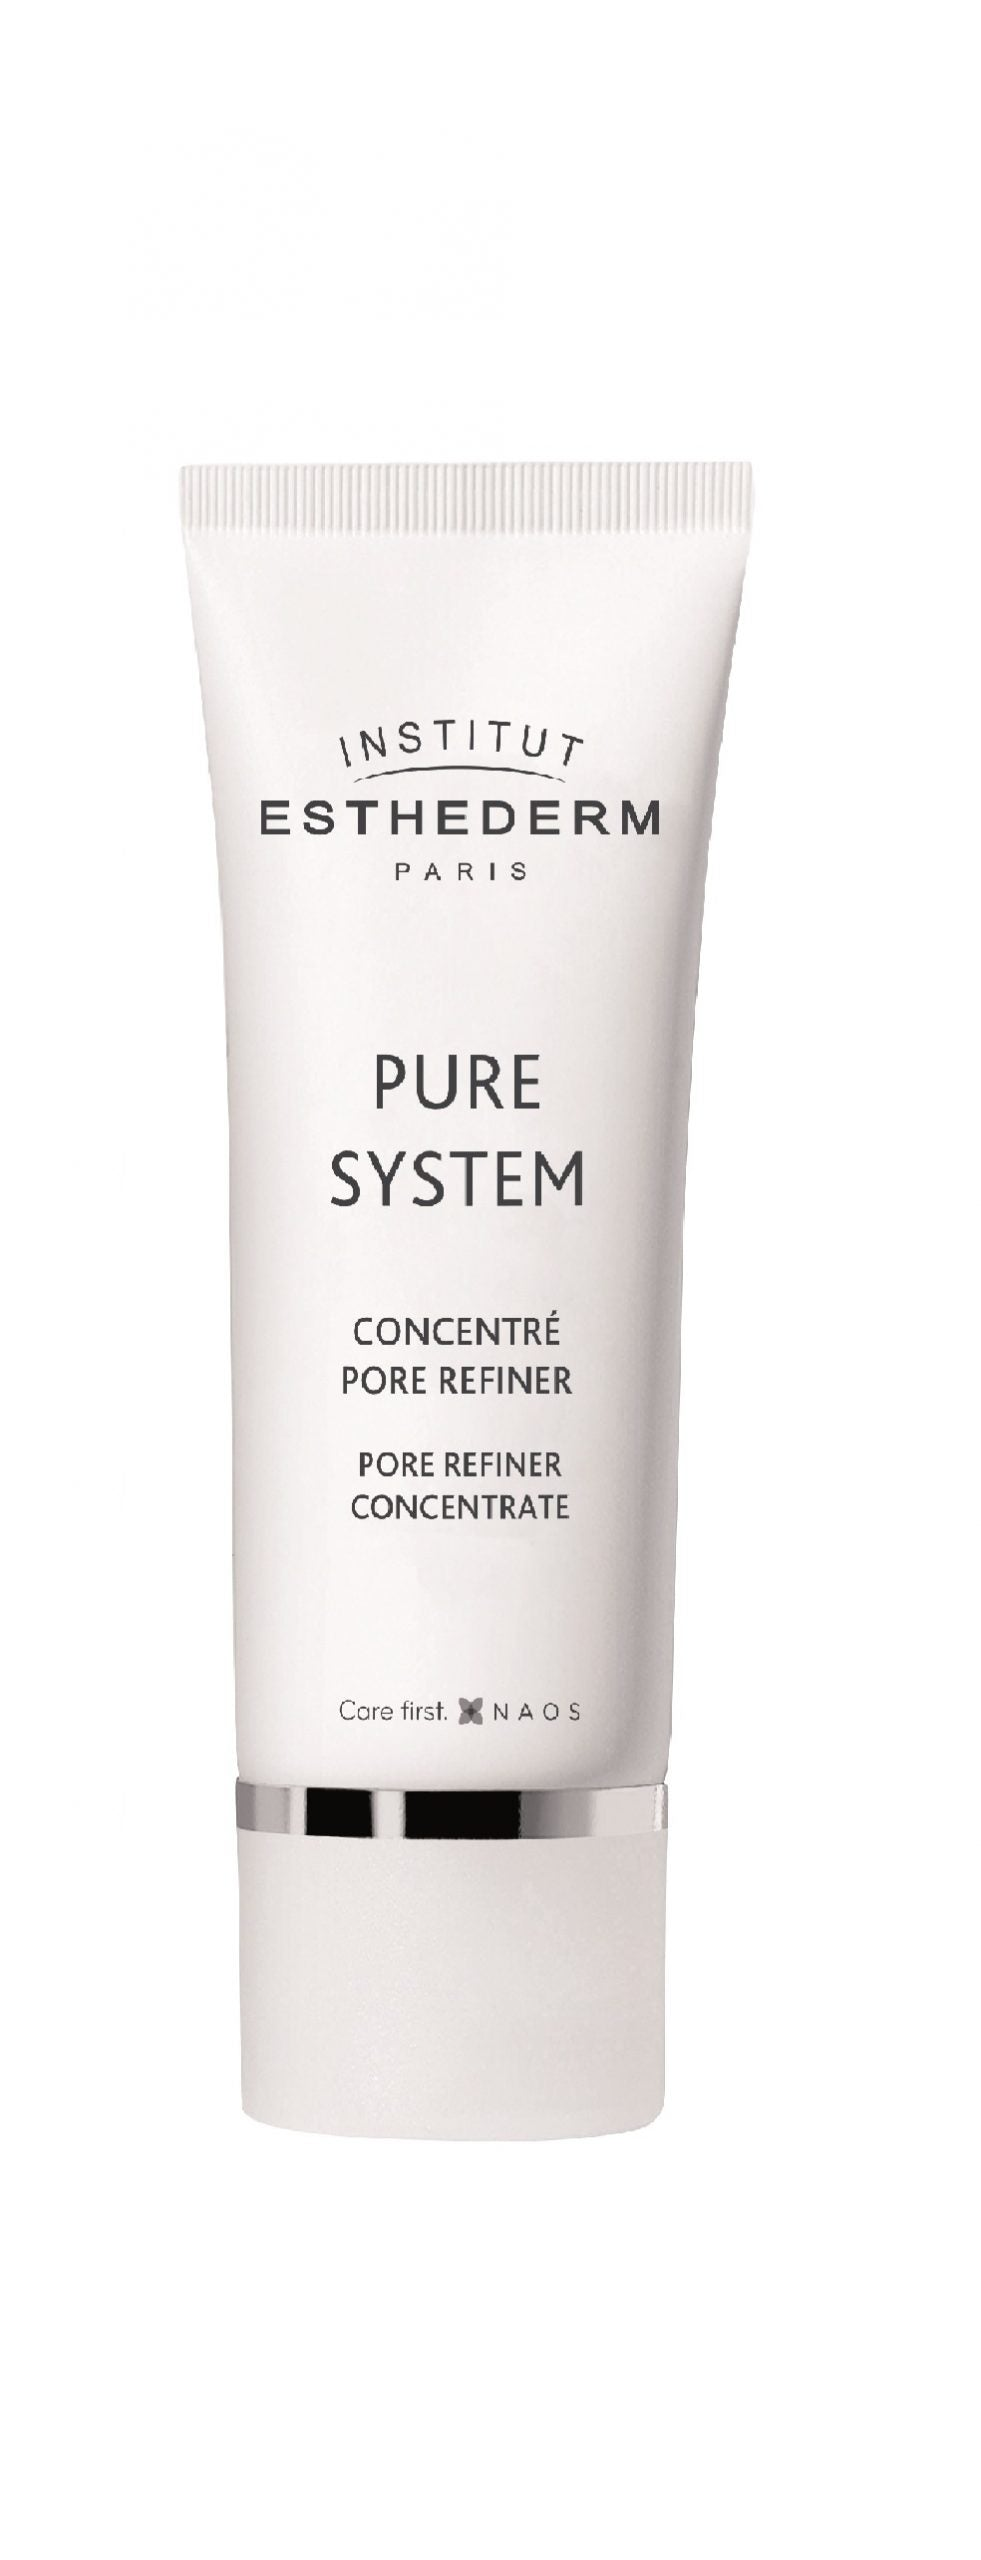 Pore Refiner Concentrate